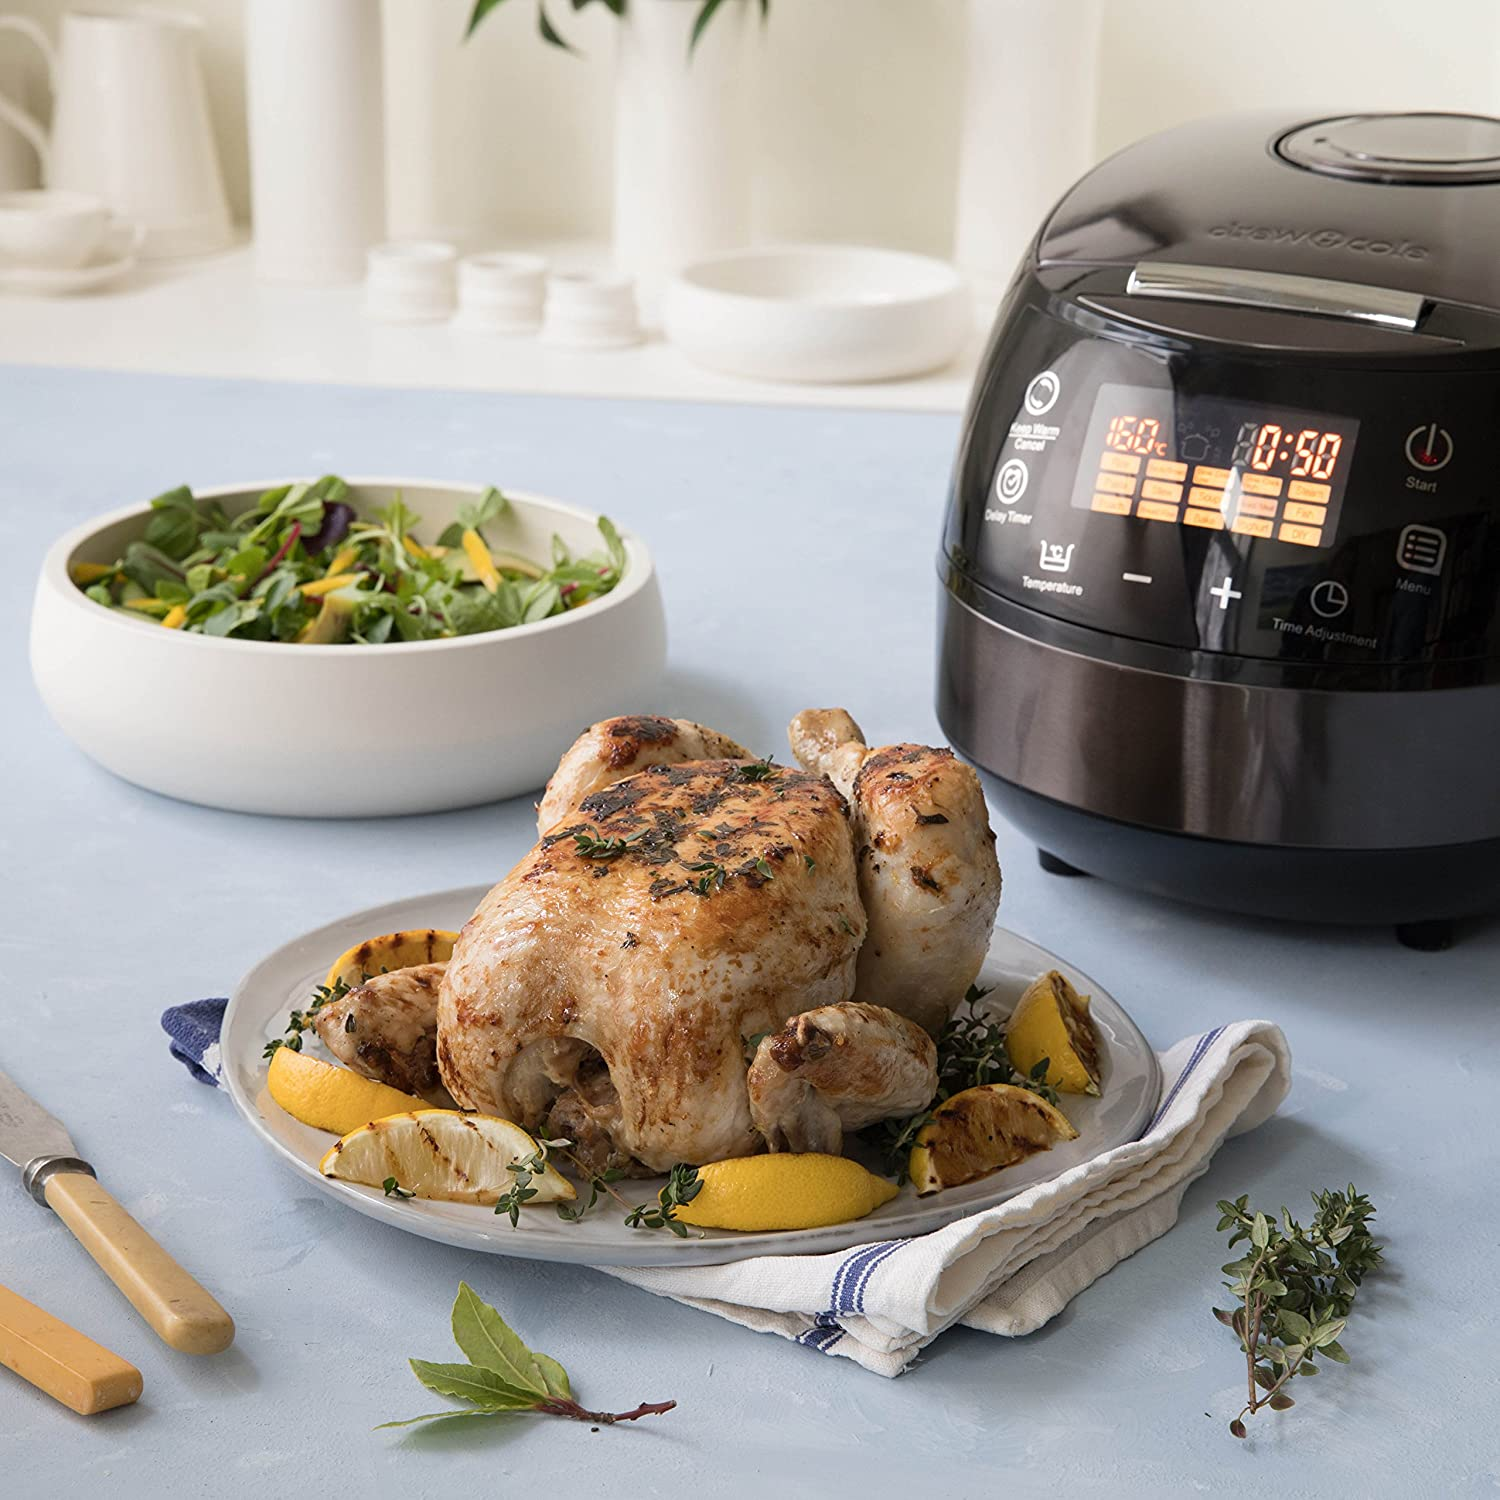 clever chef multi cooker review: what can't this machine do?